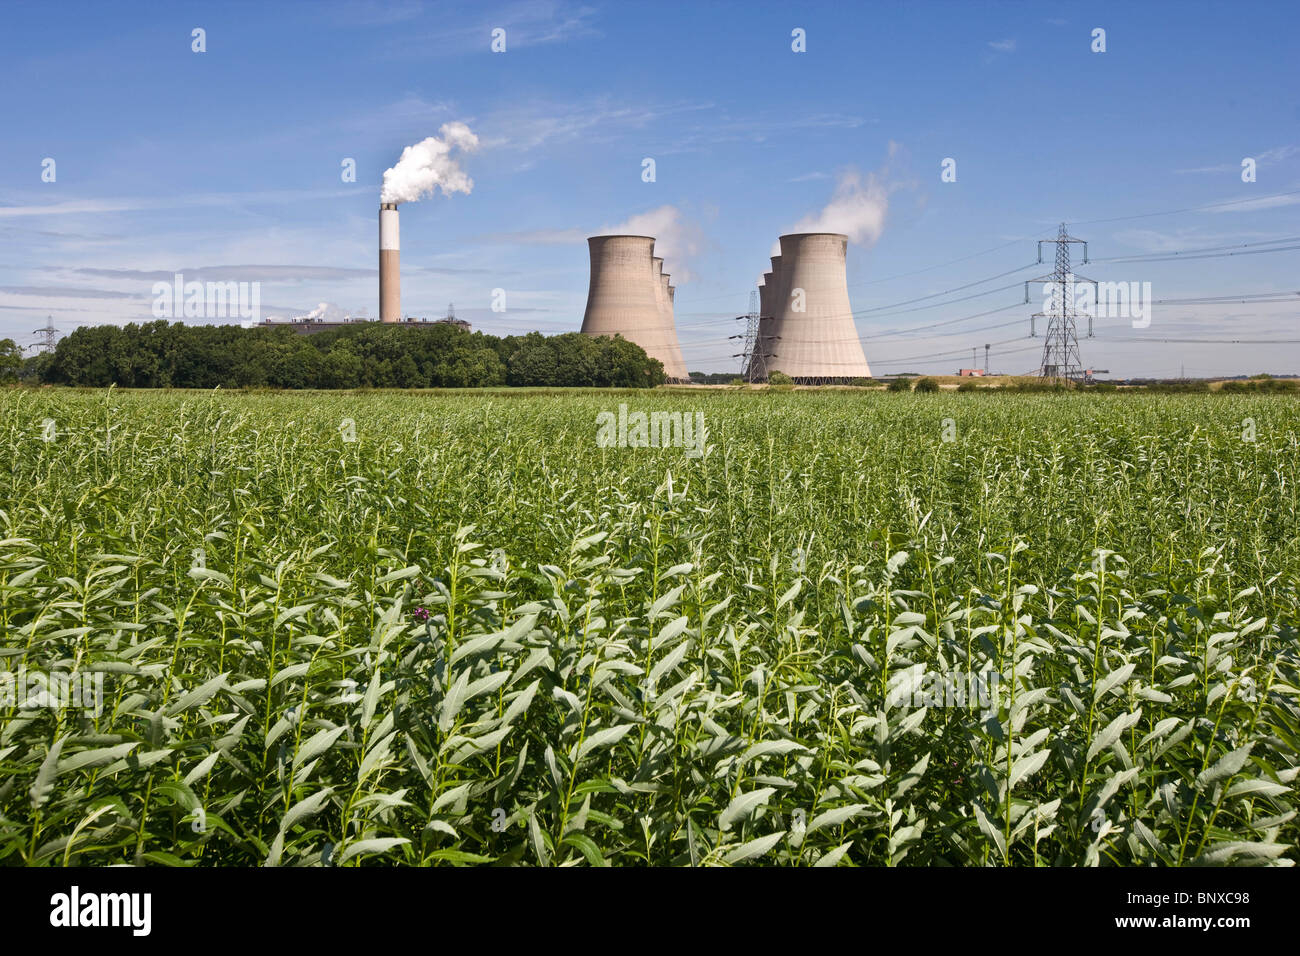 Willow being grown for use as fuel with Cottam Power Station In The Background,Nottinghamshire,England - Stock Image